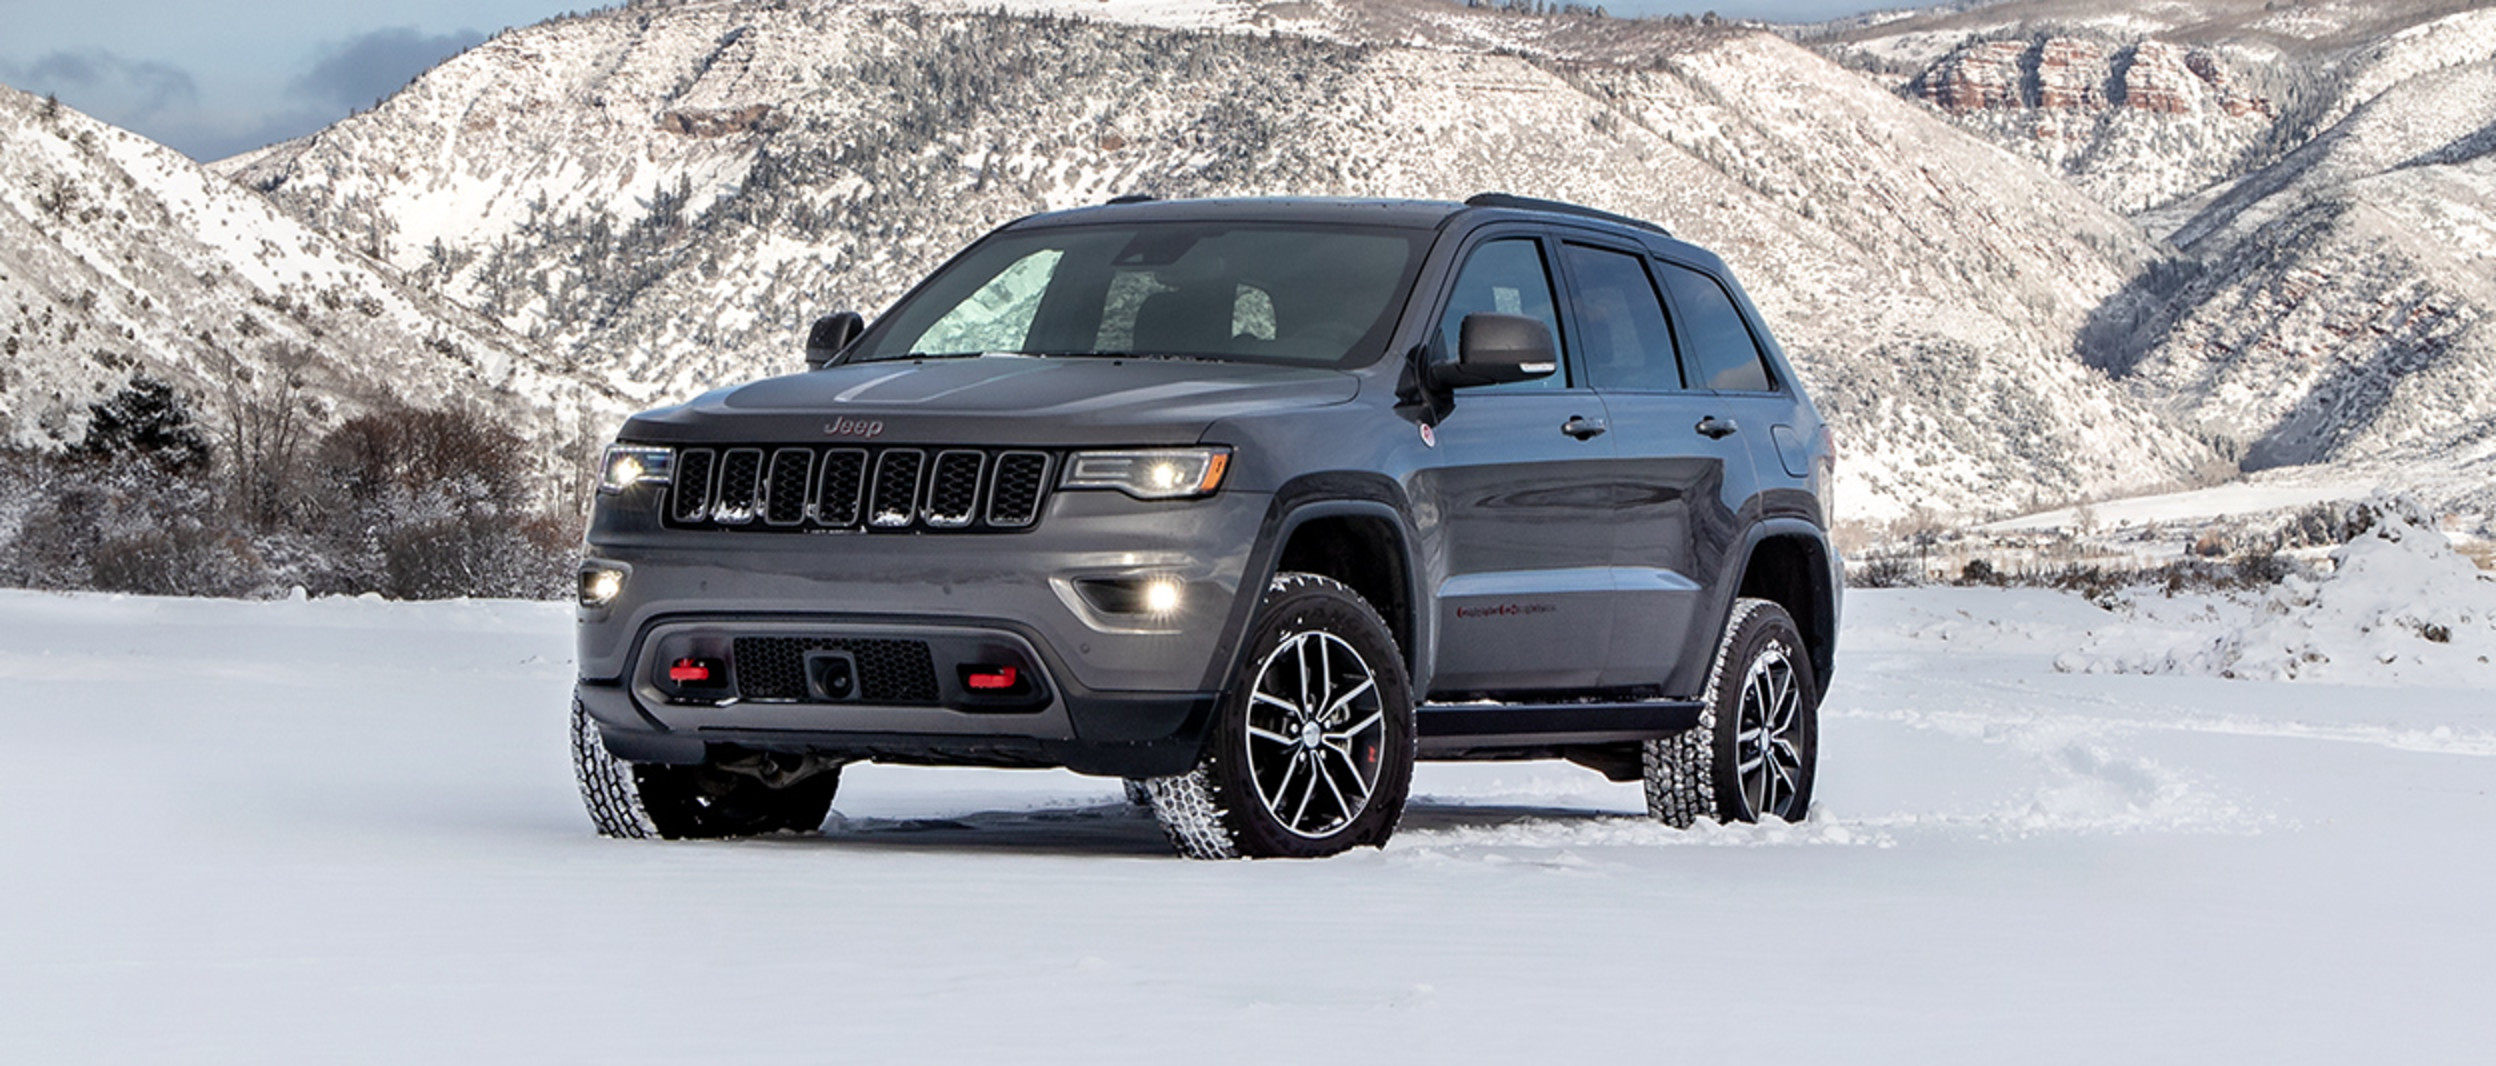 New Jeep Suv 4x4 Deals In Ontario Jeep Canada